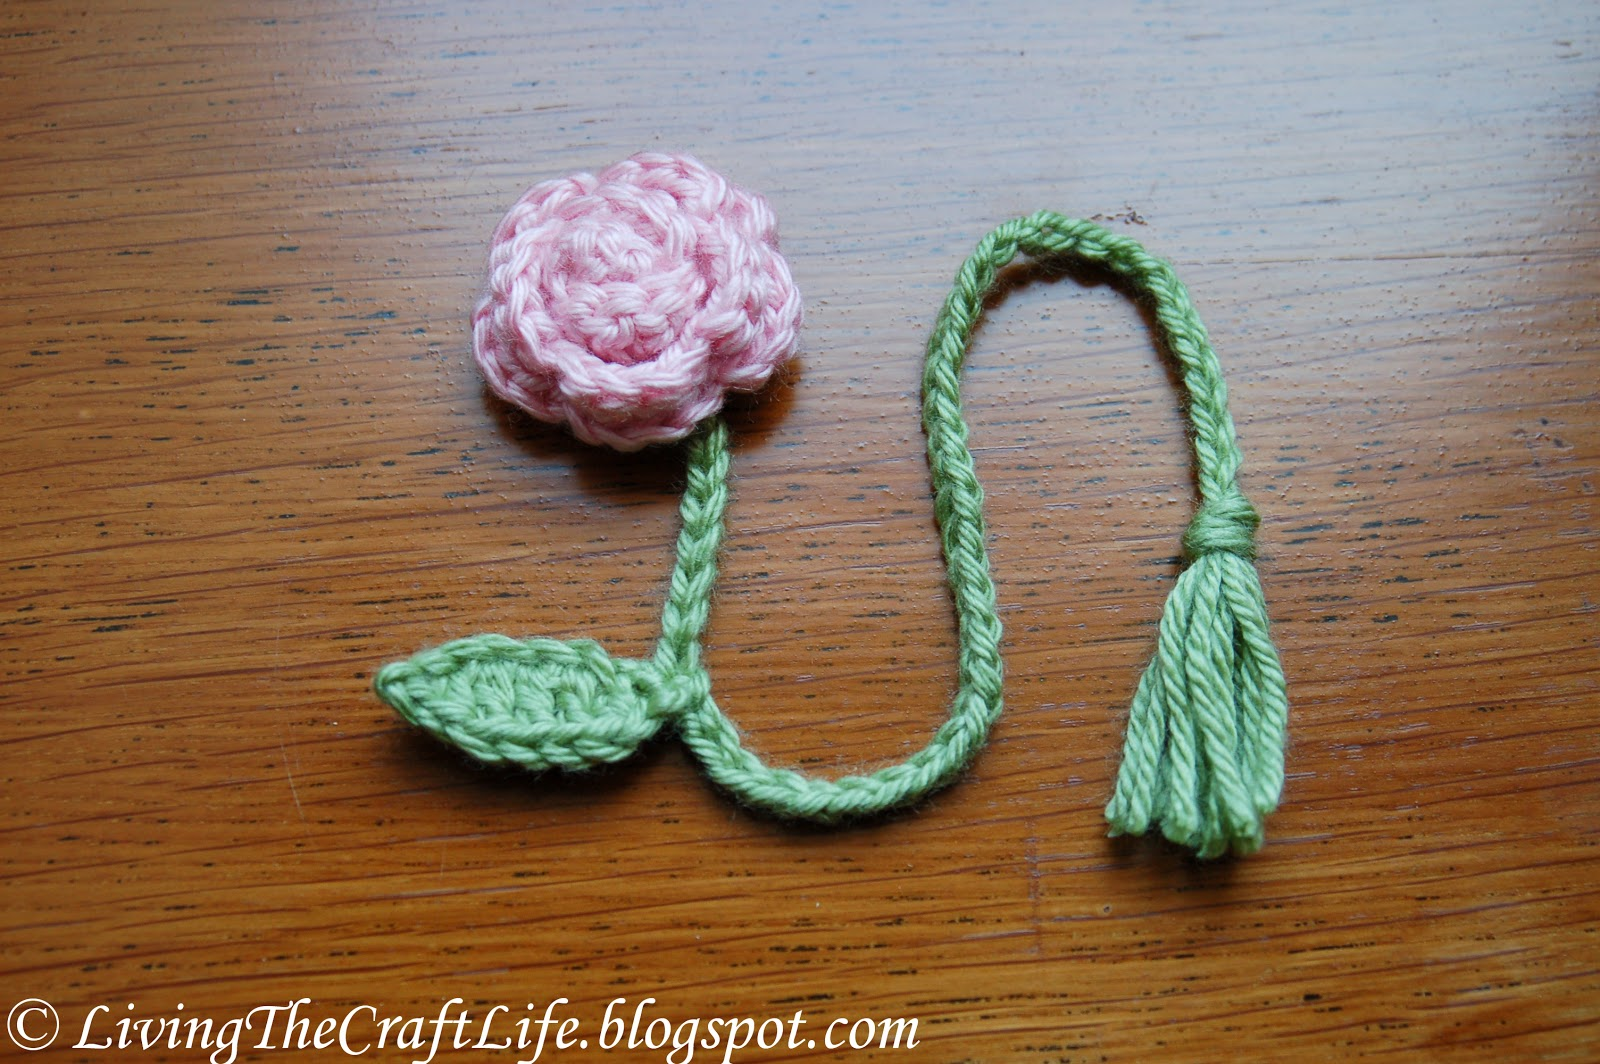 Crochet Patterns Flowers With Stems Gardening Flower And Vegetables